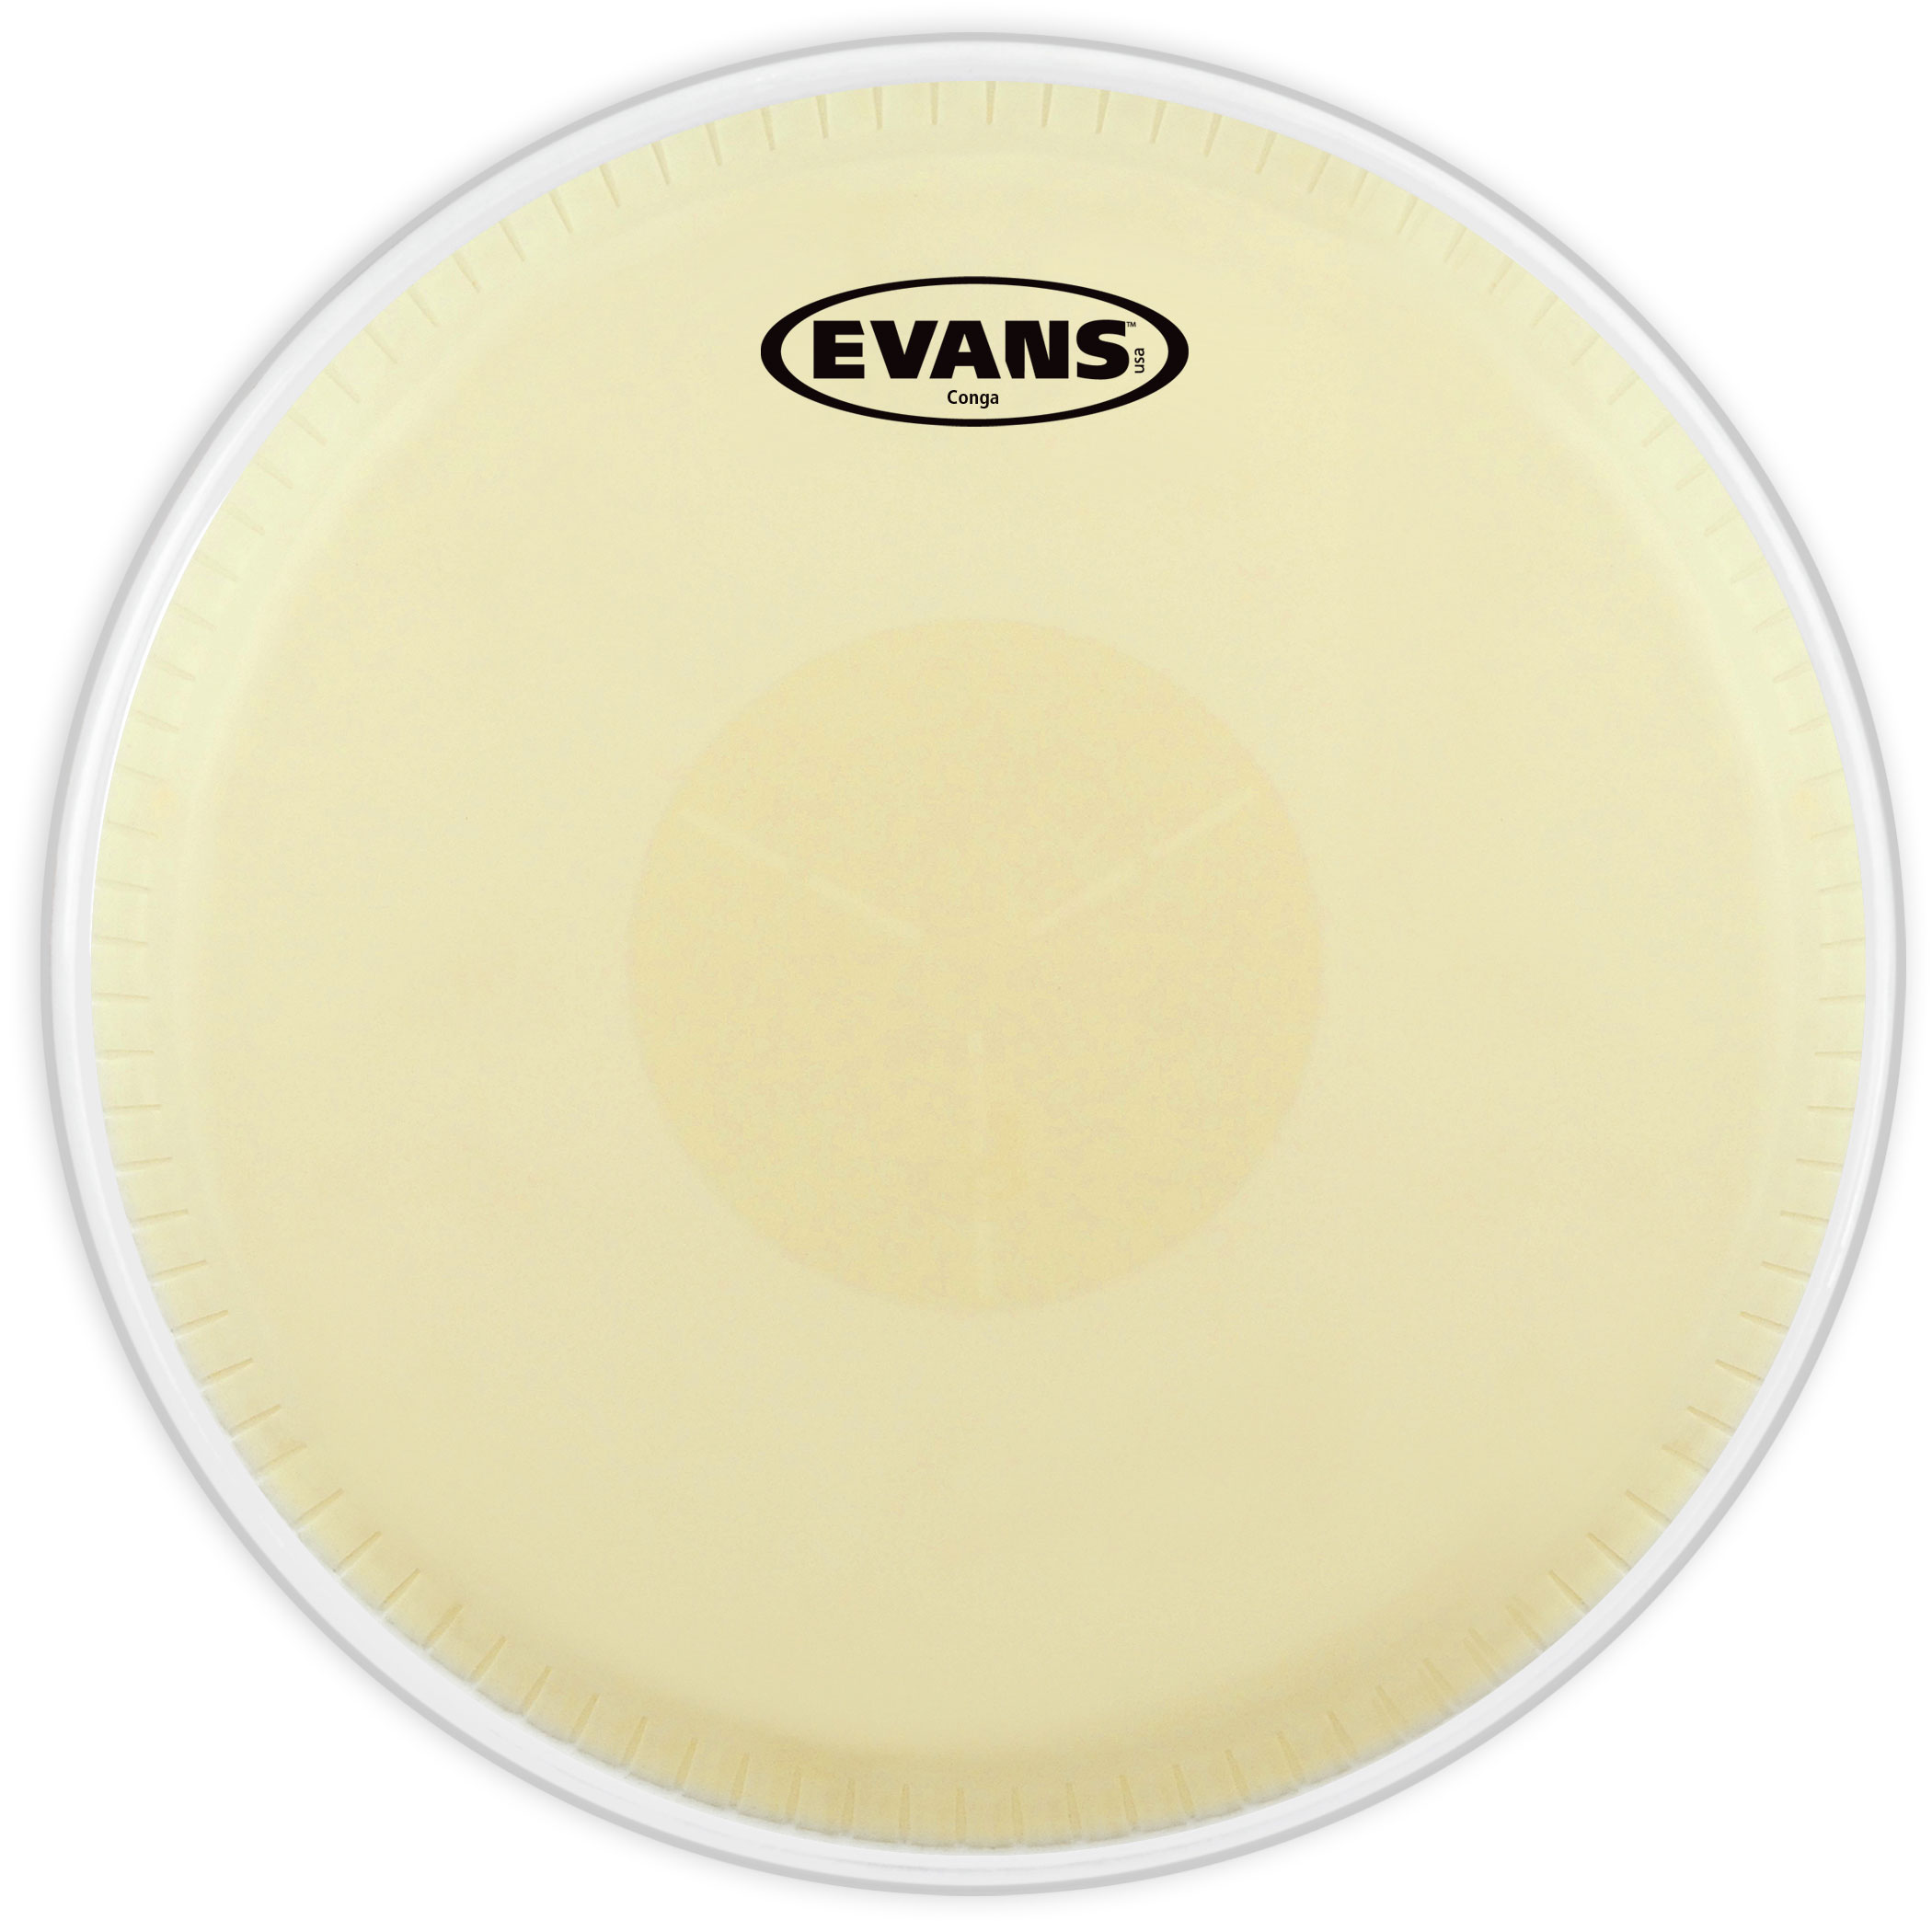 "Evans 11.75"" Tri-Center Extended Conga Head"